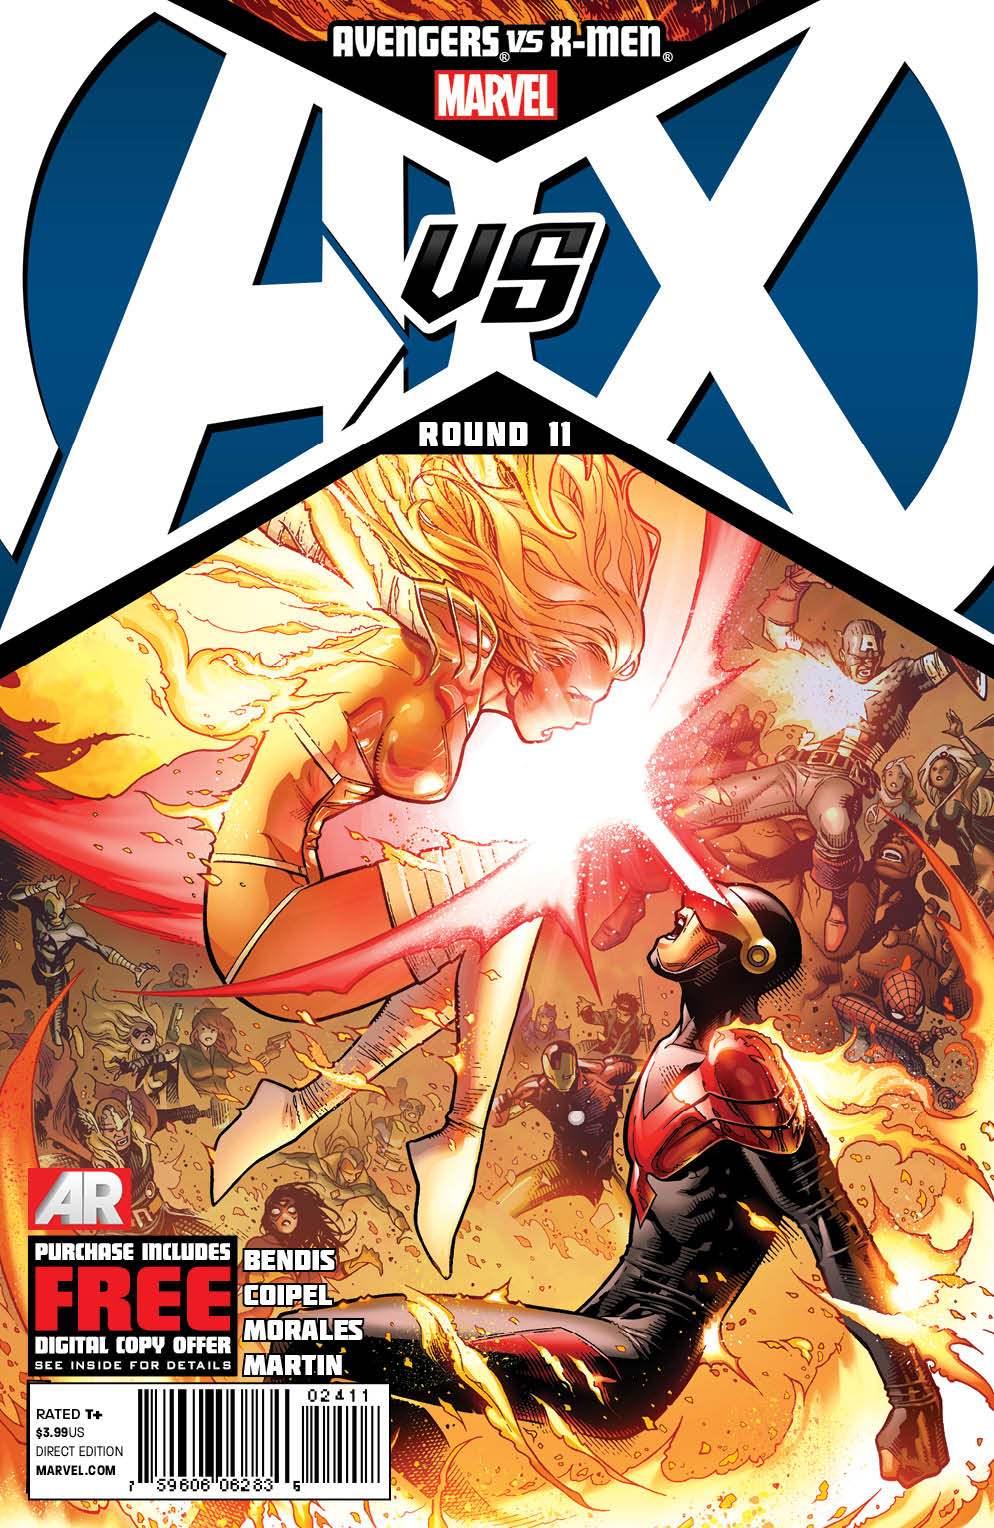 Your First Look At AVENGERS VS. X-MEN #11